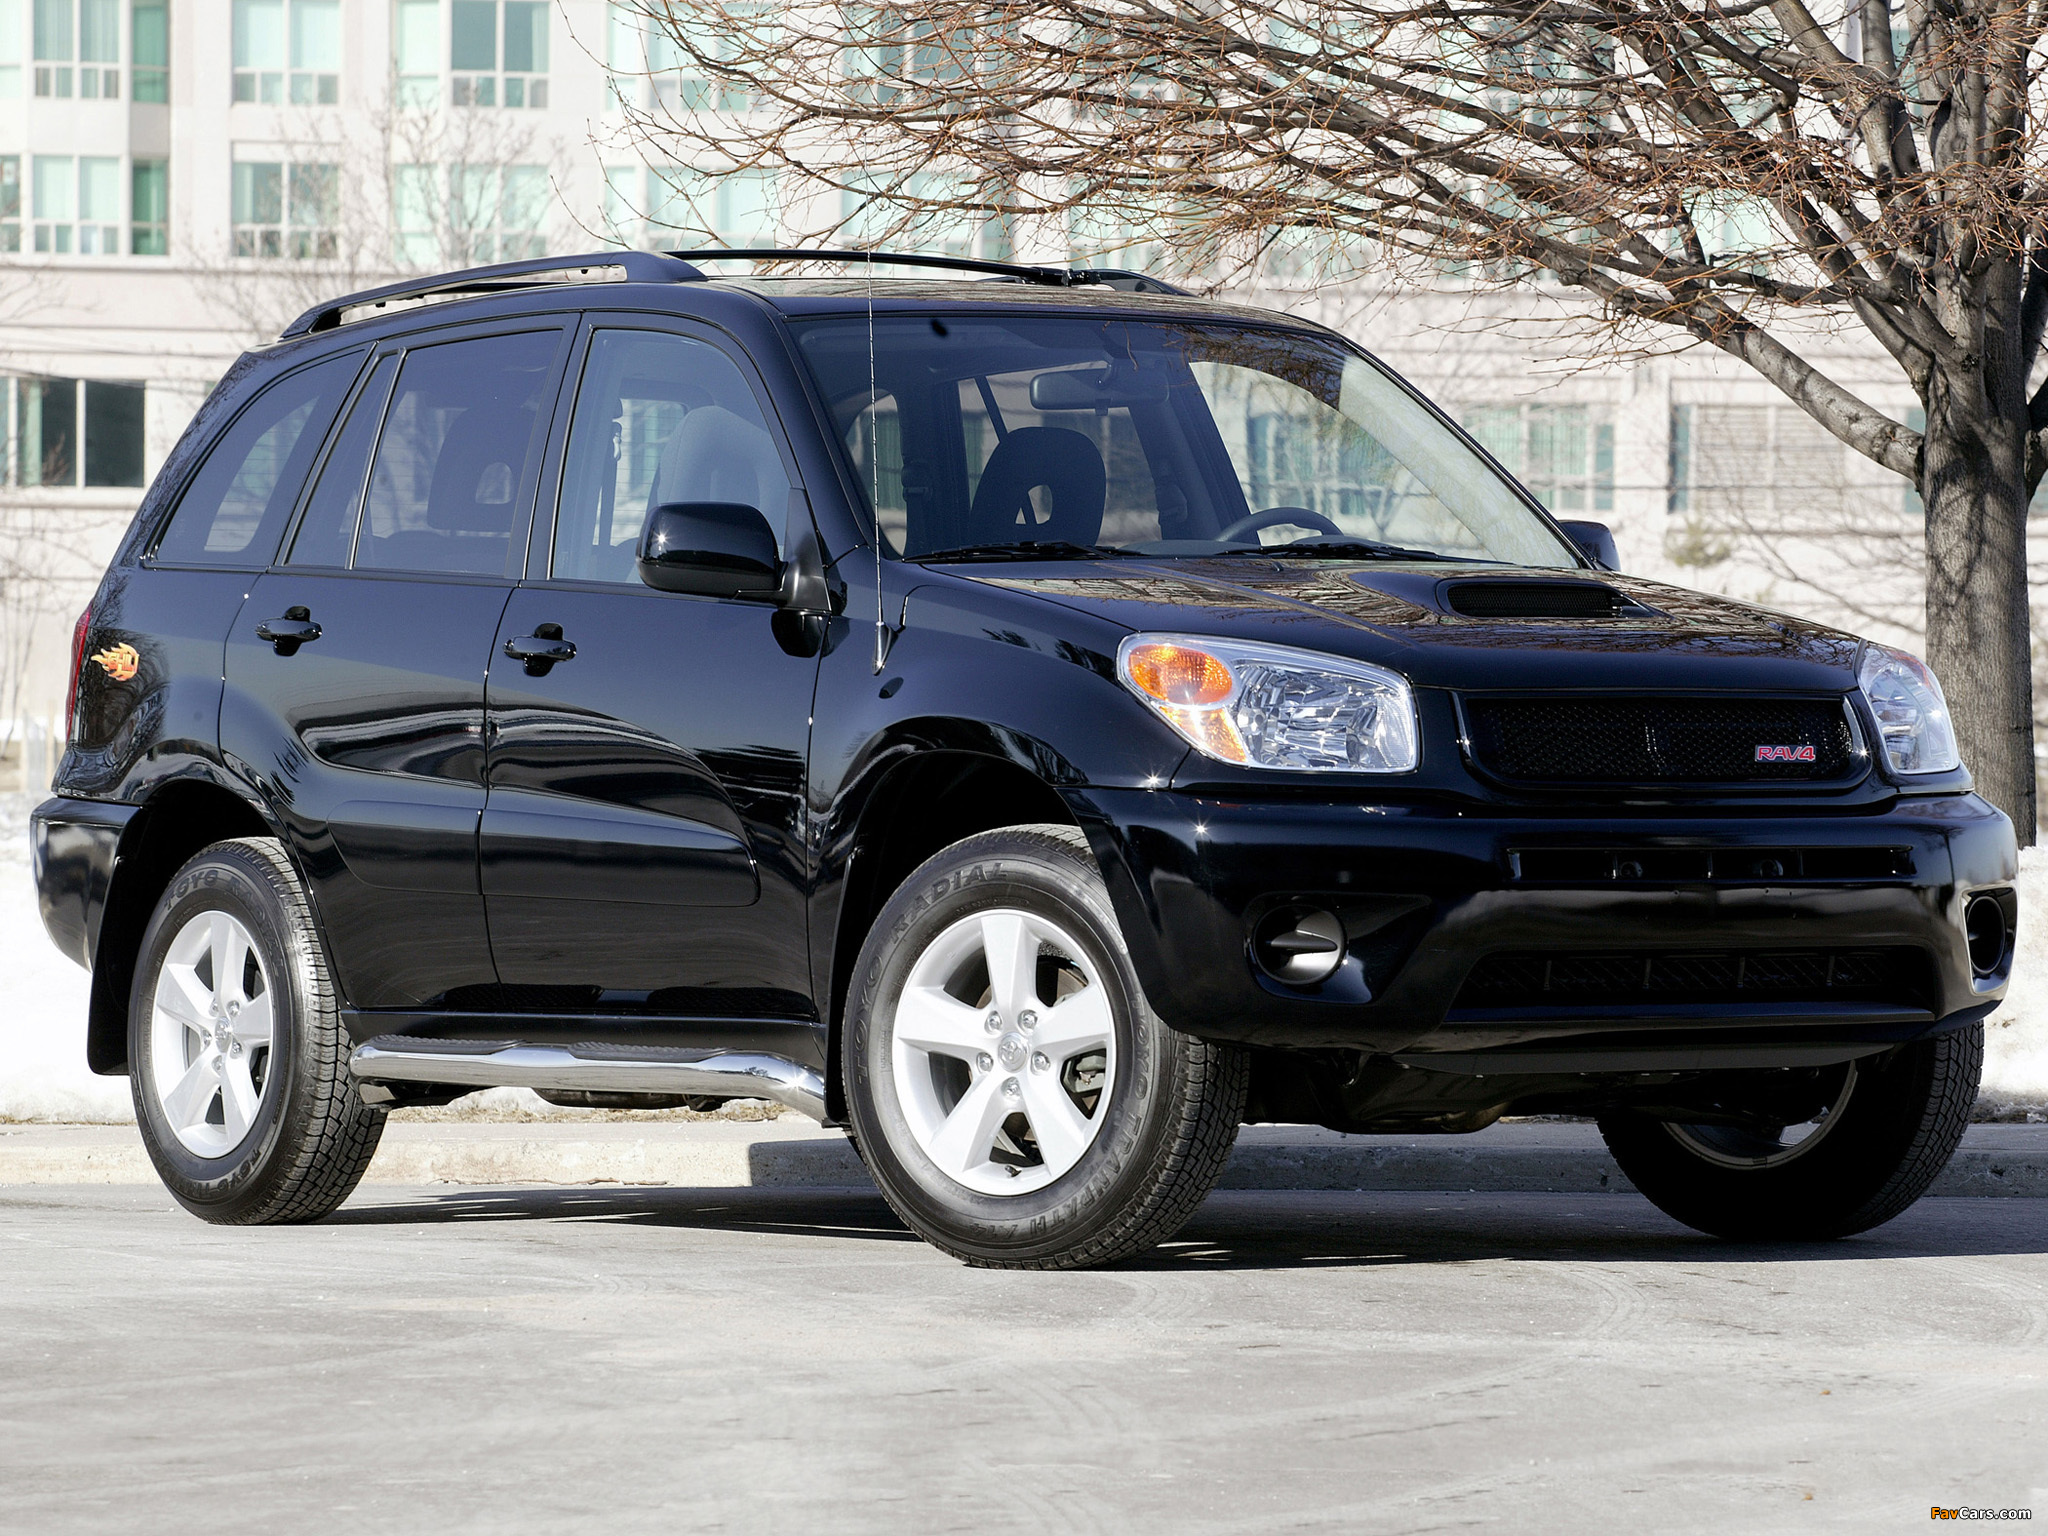 2004 toyota rav4 information and photos zombiedrive. Black Bedroom Furniture Sets. Home Design Ideas